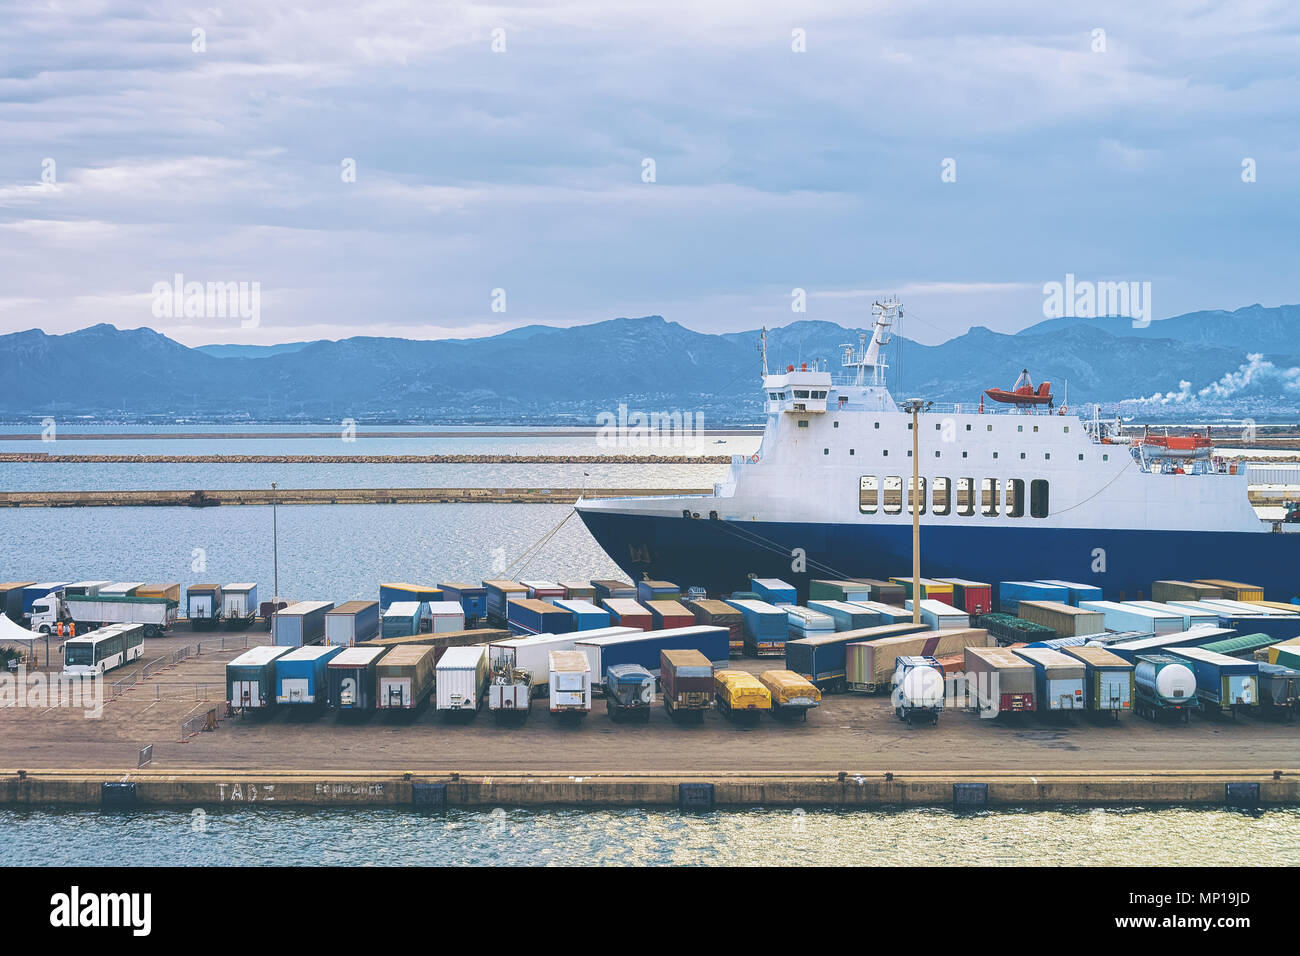 Waggons of vans in the port, Cagliari, Sardinia, Italy - Stock Image